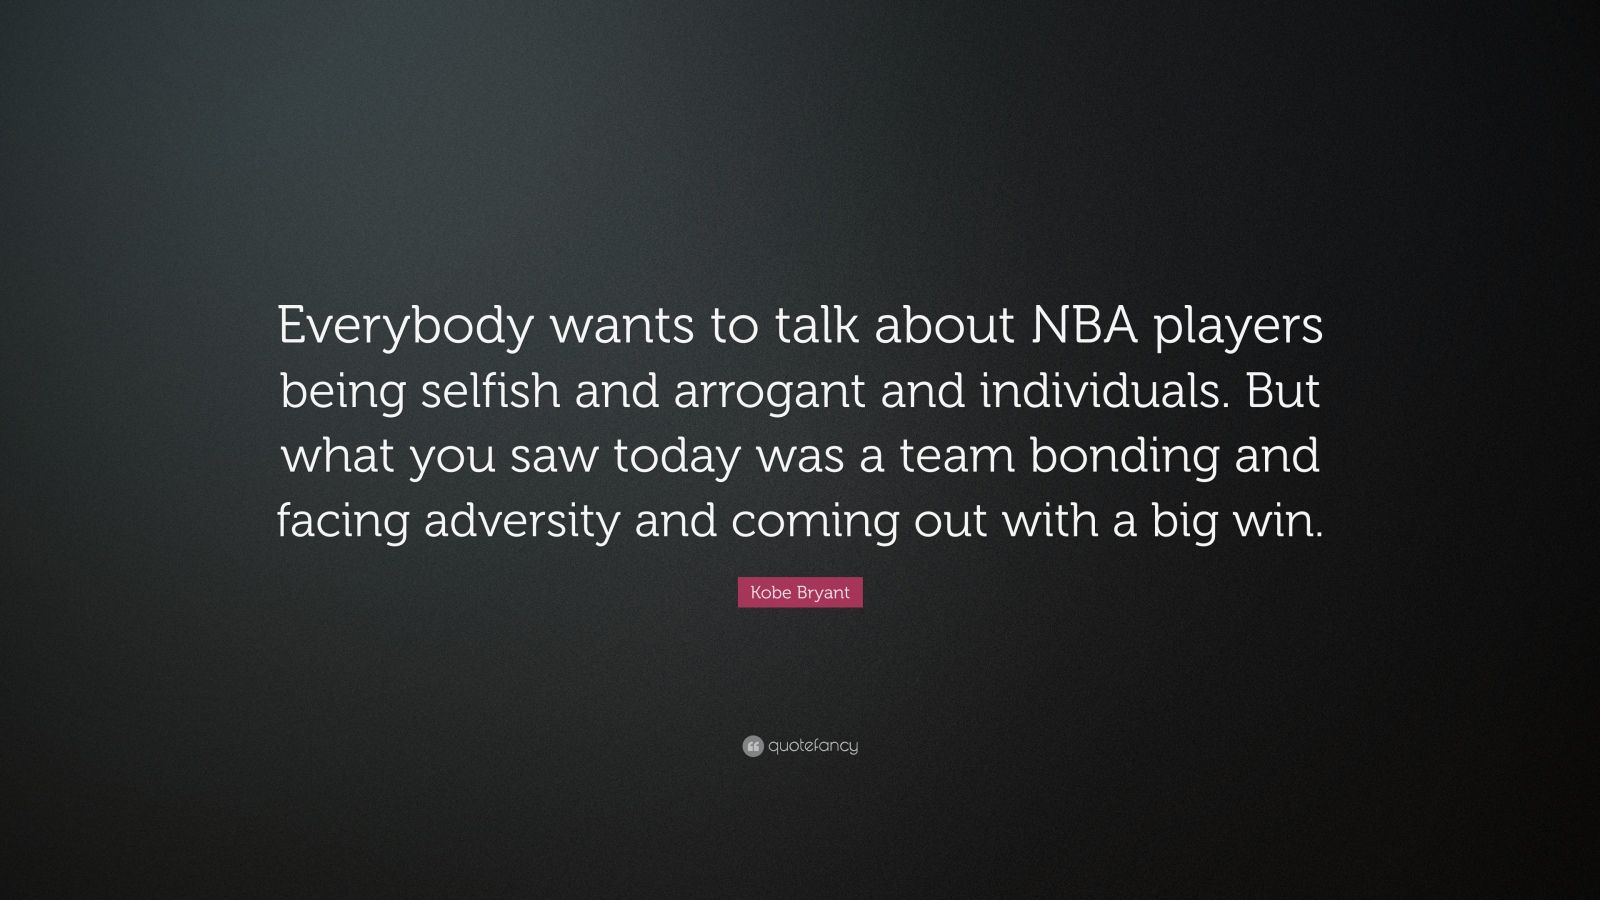 """Kobe Bryant Quote: """"Everybody wants to talk about NBA players being selfish and arrogant and individuals. But what you saw today was a team bonding and facing adversity and coming out with a big win."""""""